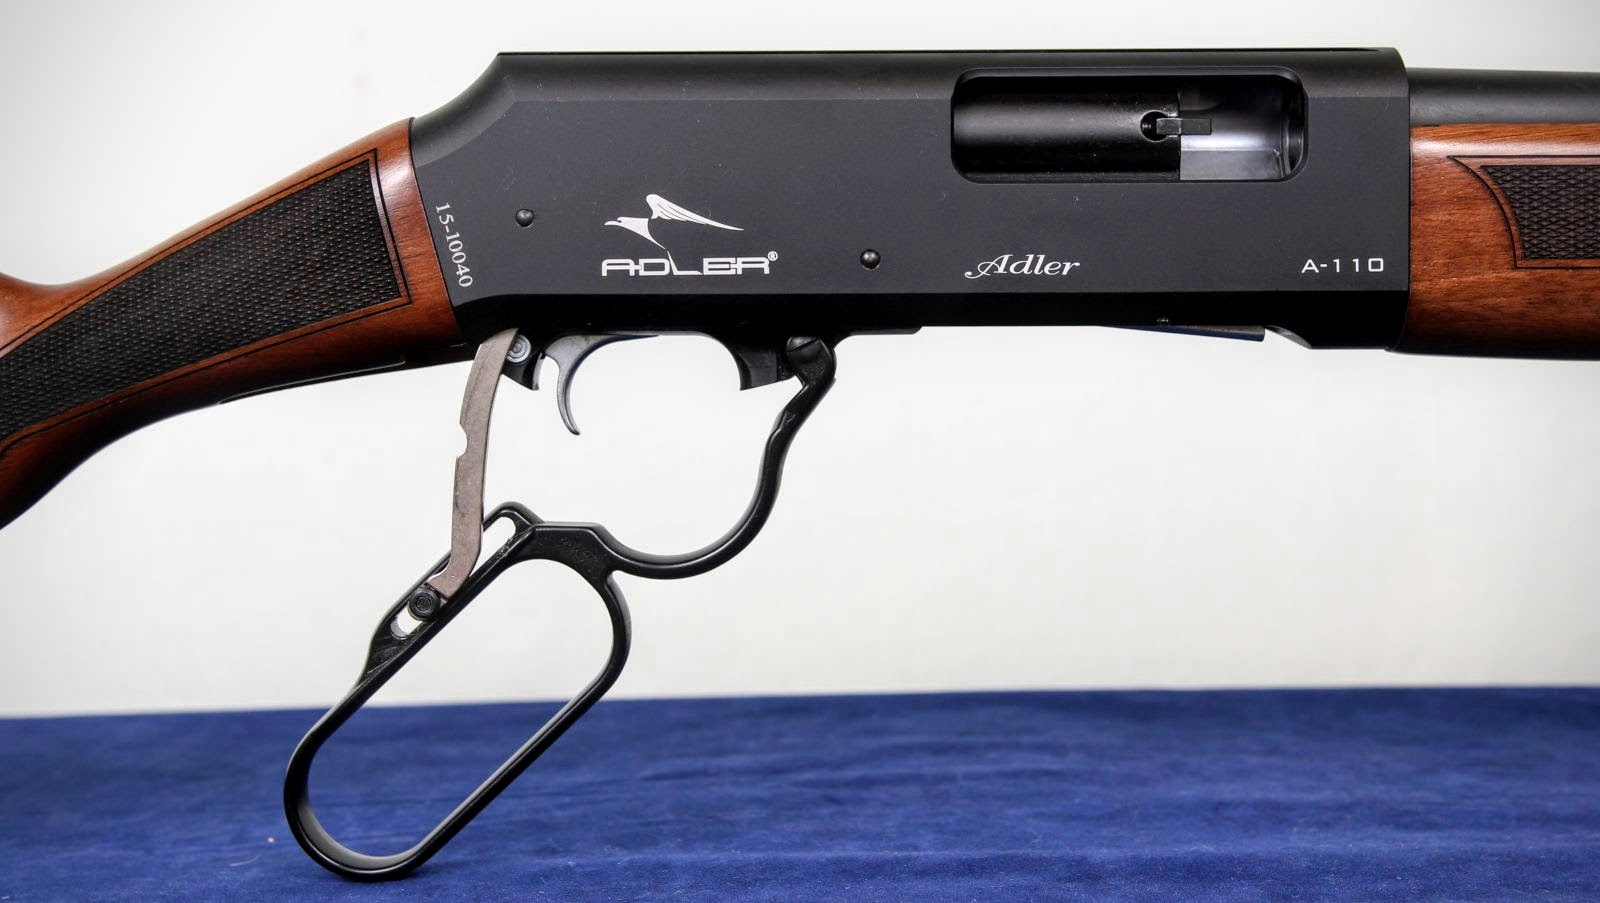 Adler Arms A-110 Lever Action Shotgun Review | The Hunting Gear Guy